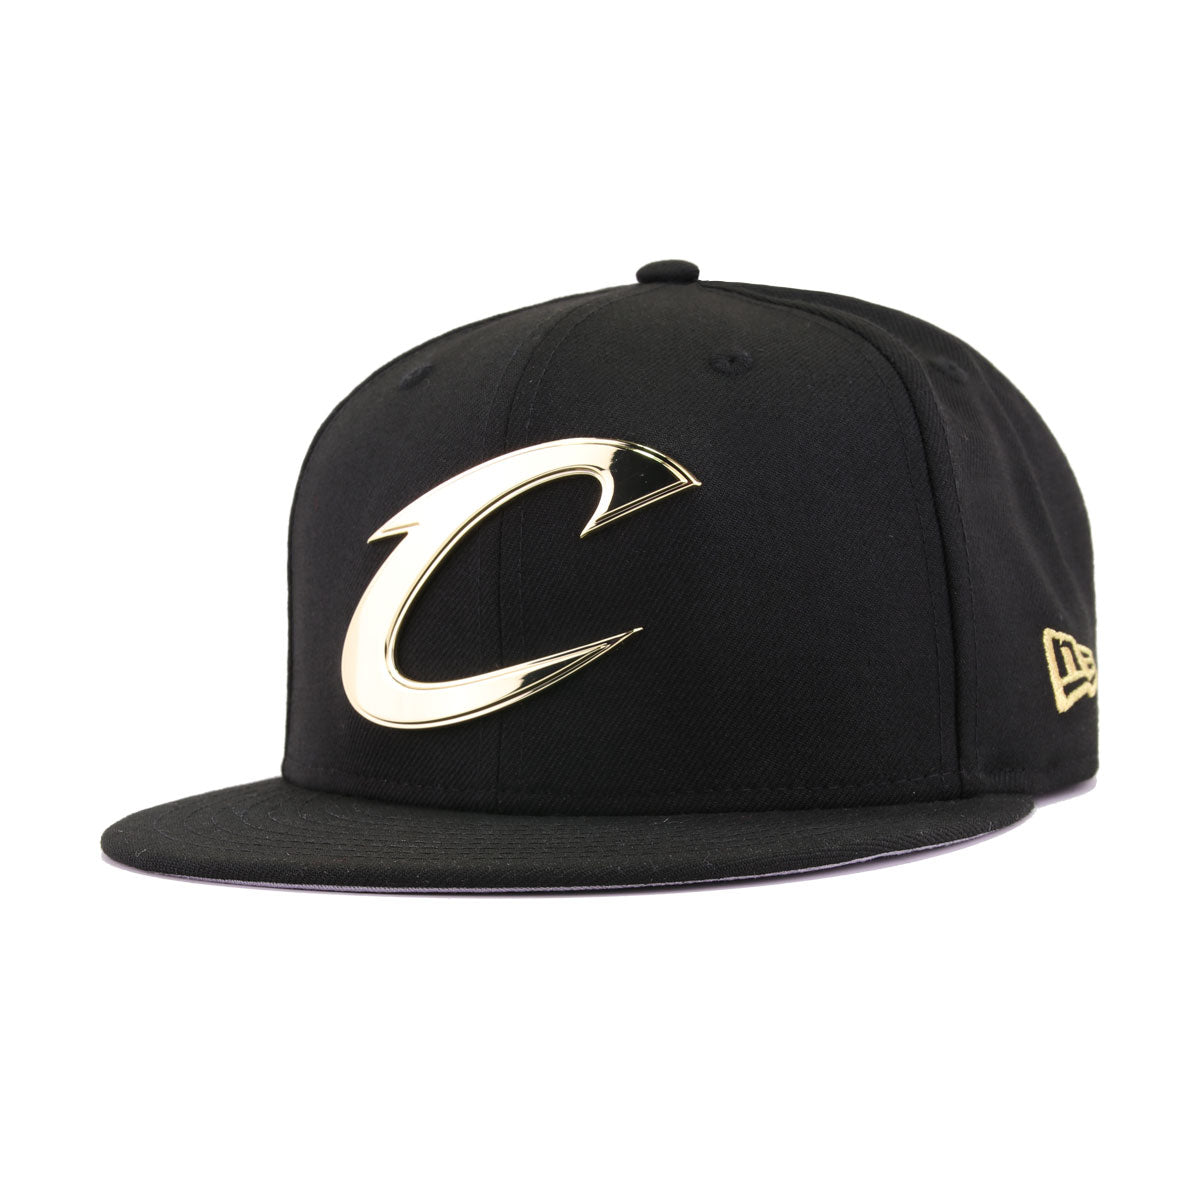 c2767be2da4c9 Cleveland Cavaliers Black Gold Metal Badge 2016 NBA Finals Champion New Era  9Fifty Snapback